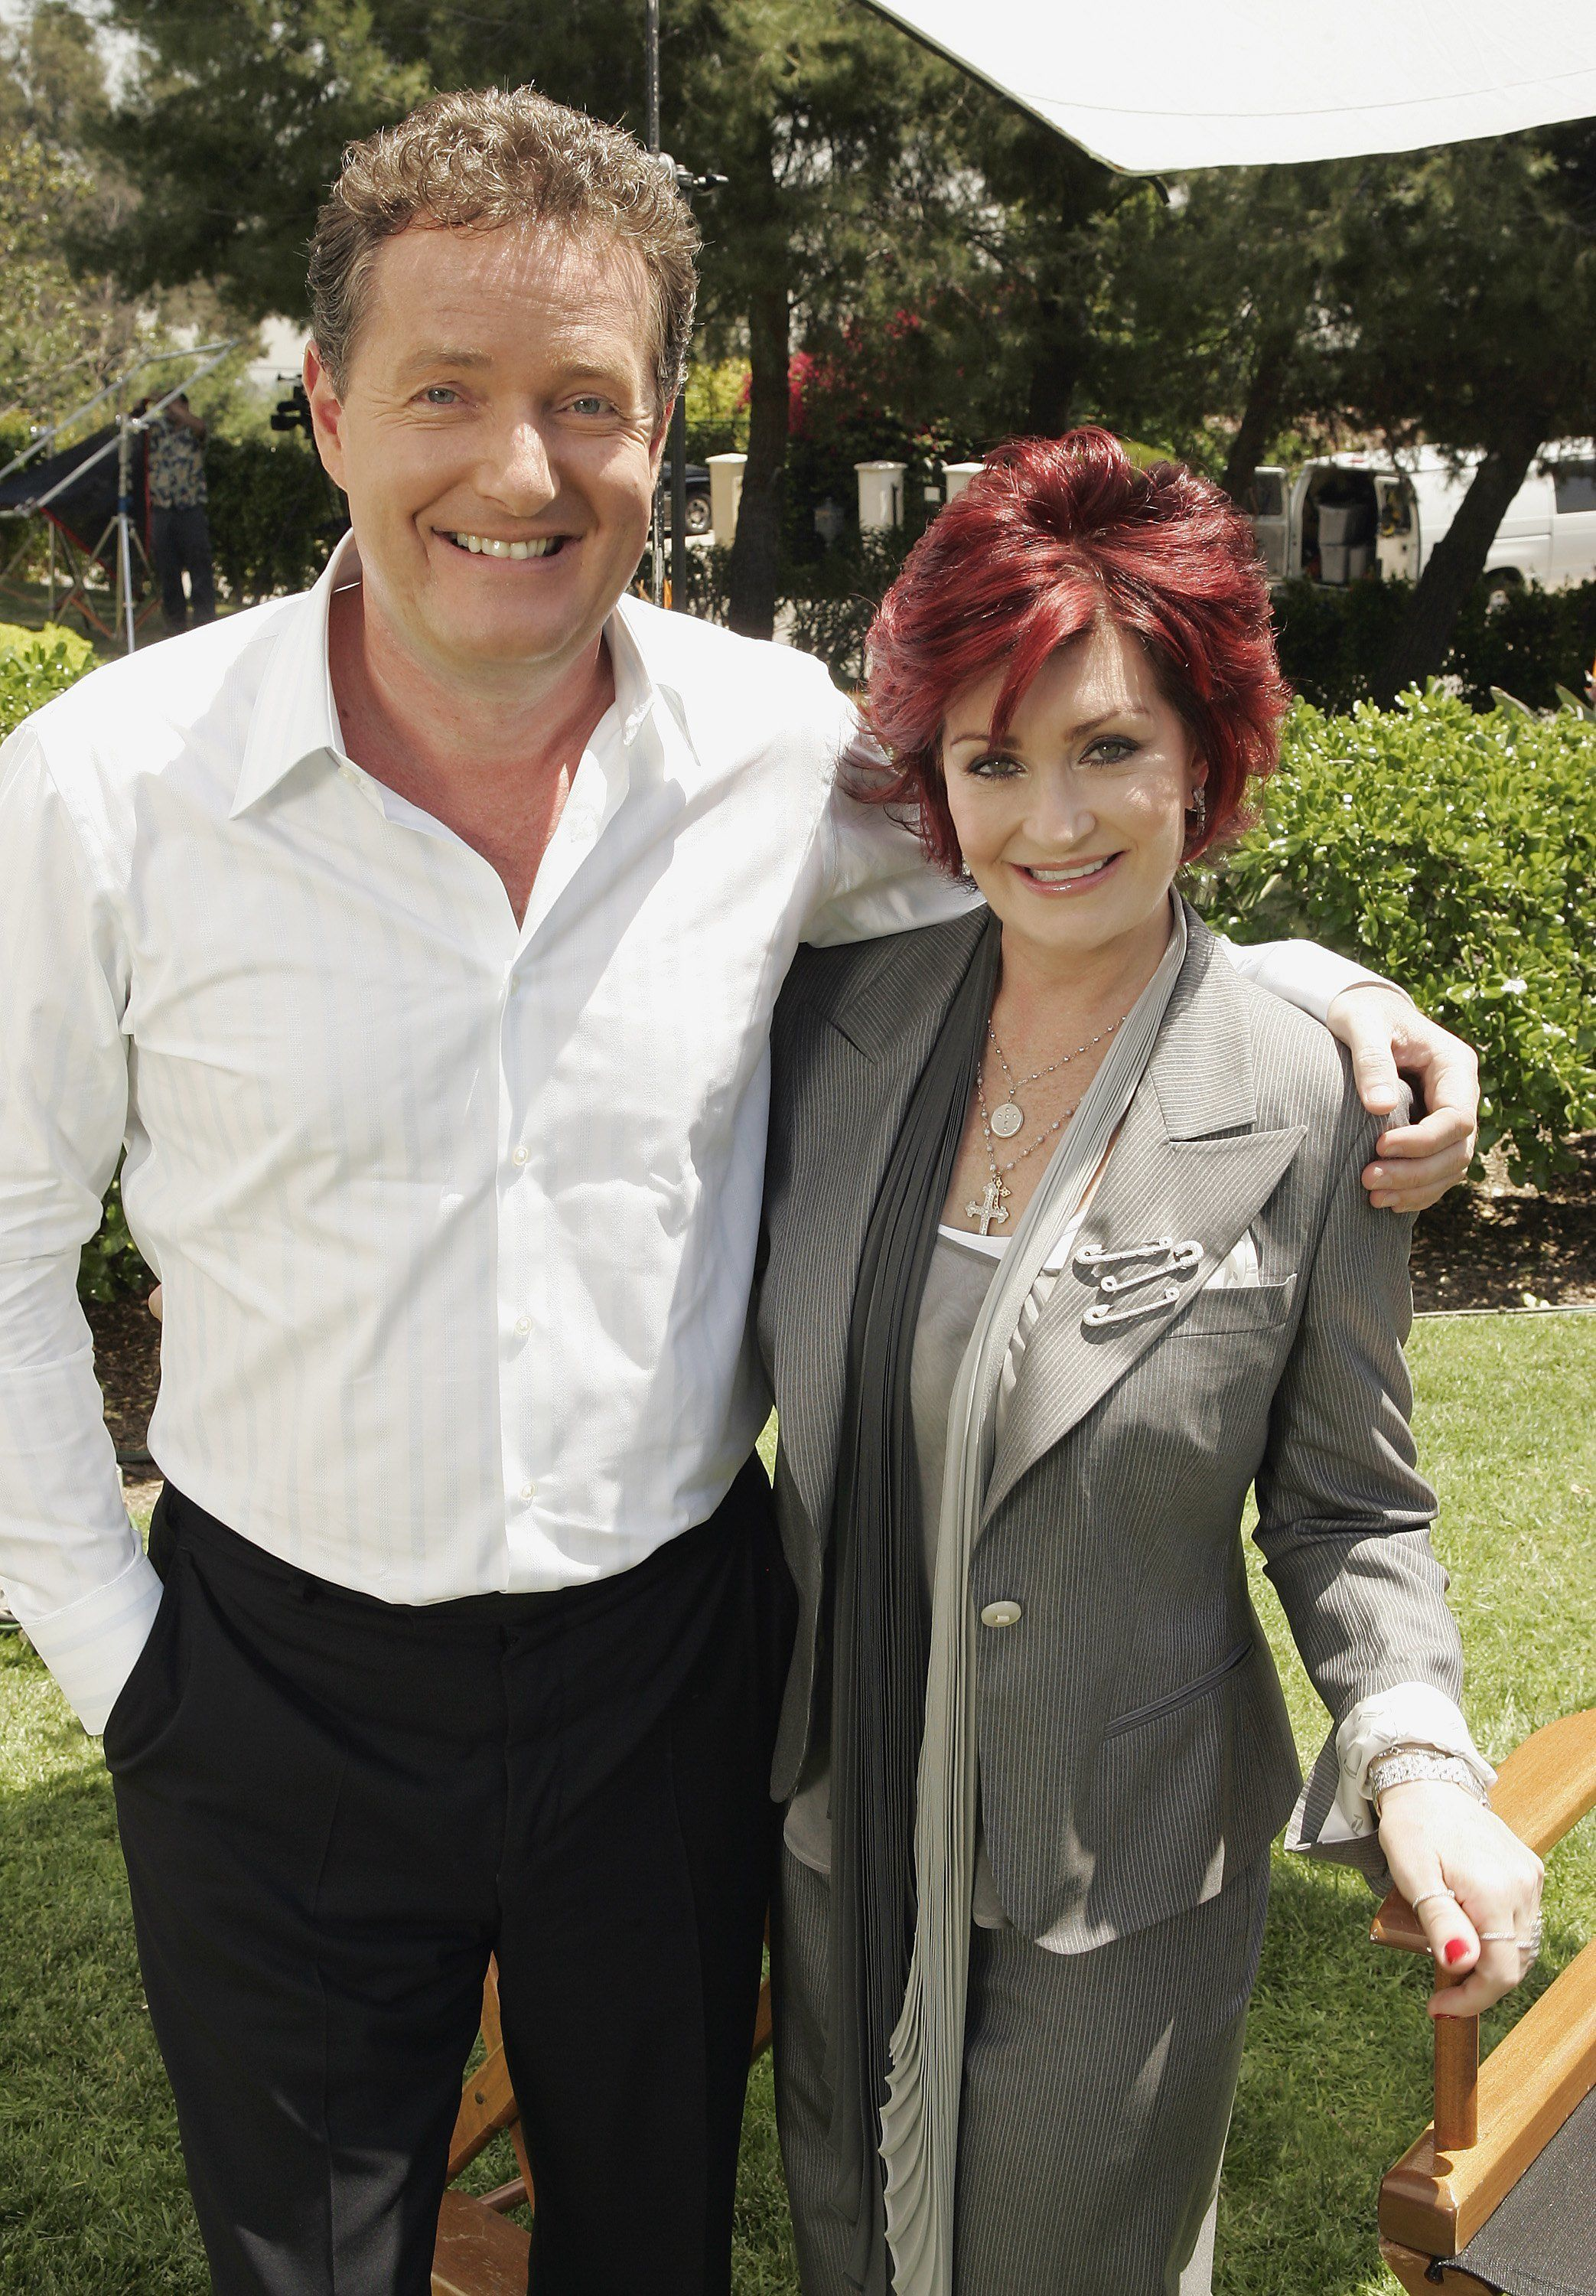 Piers and Sharon have known each other for a number of